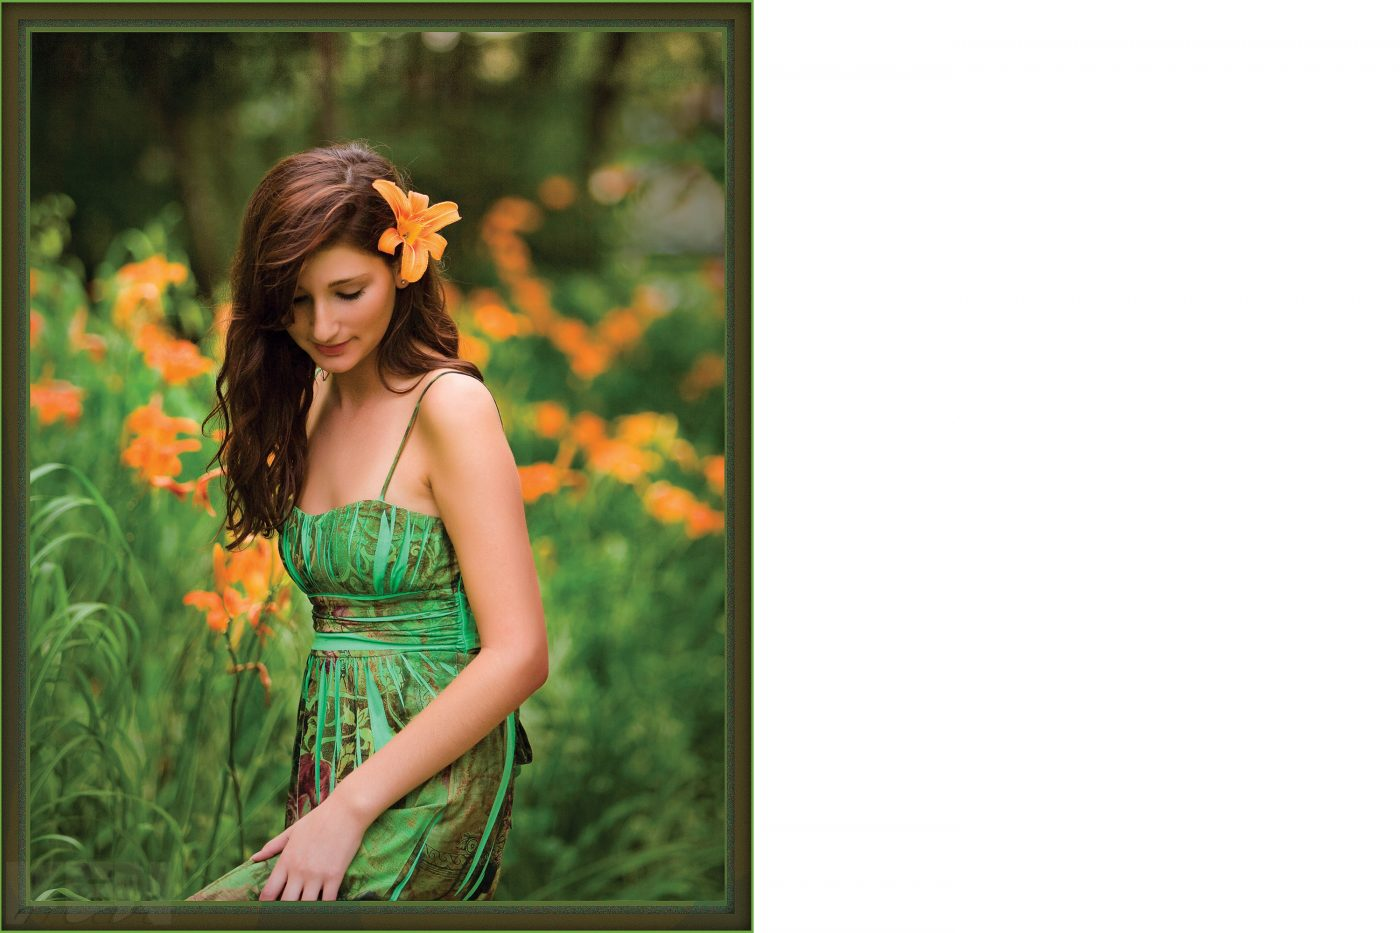 Green and orange. Limiting the color palette makes for a more pleasant portrait.